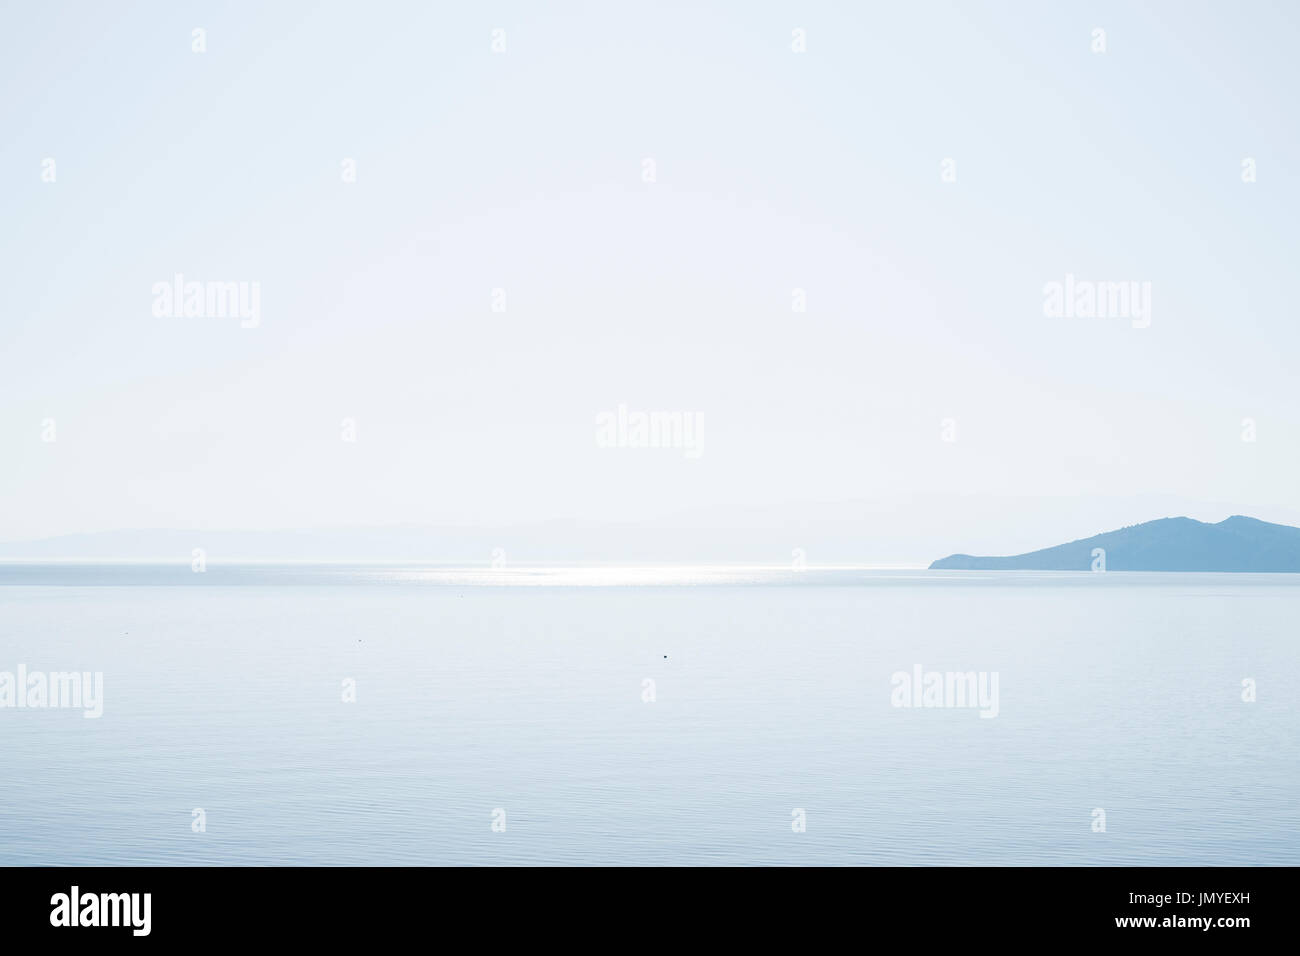 The still waters of the Aegean sea. Greece - Stock Image